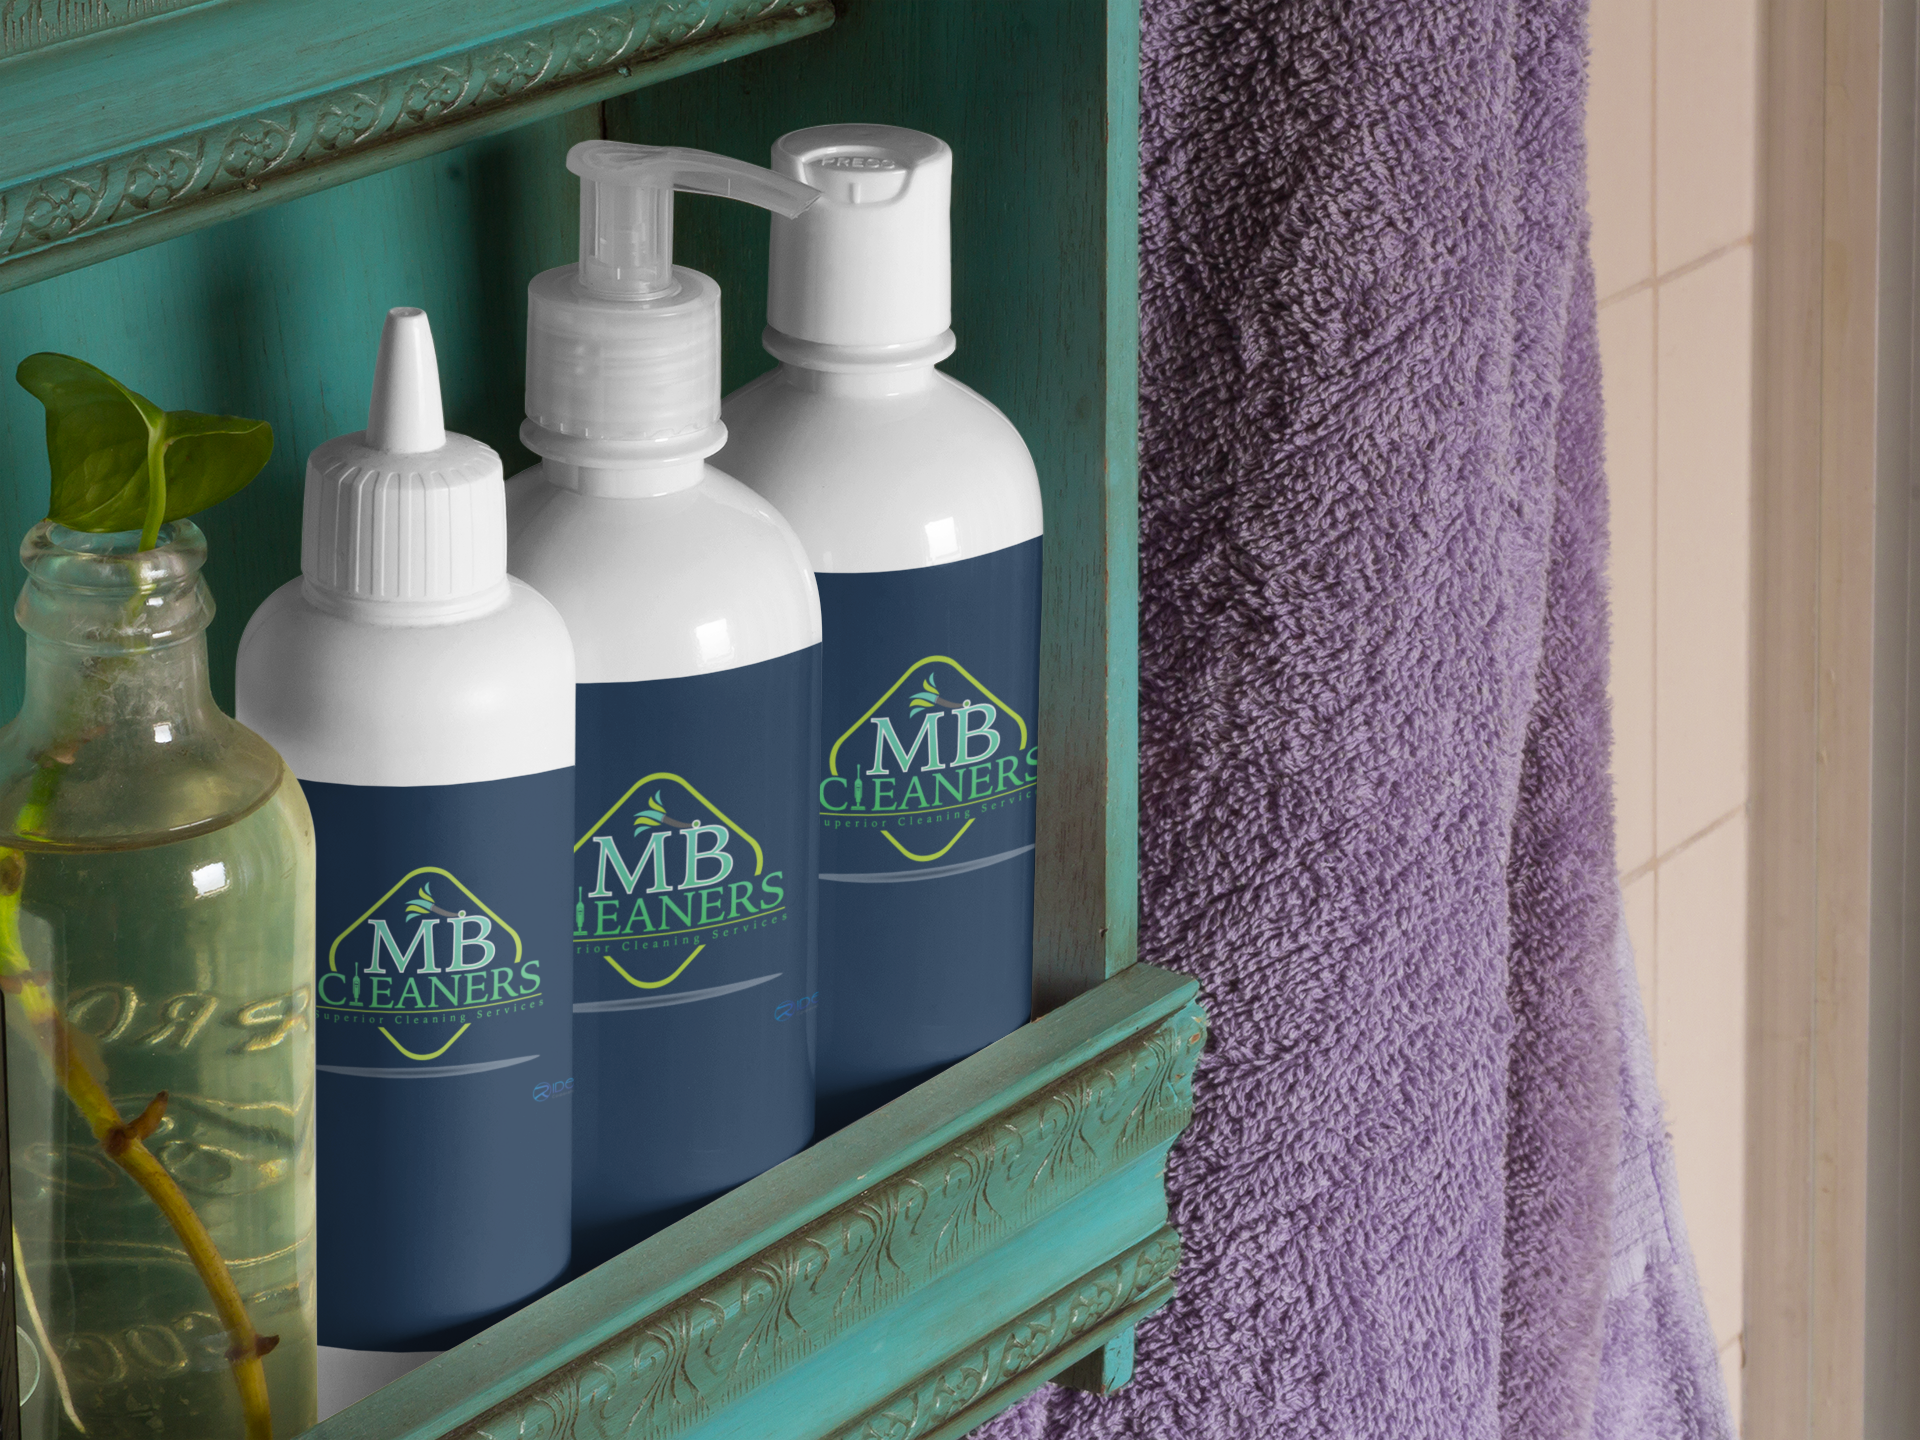 Packing - MB Cleaners LLC.